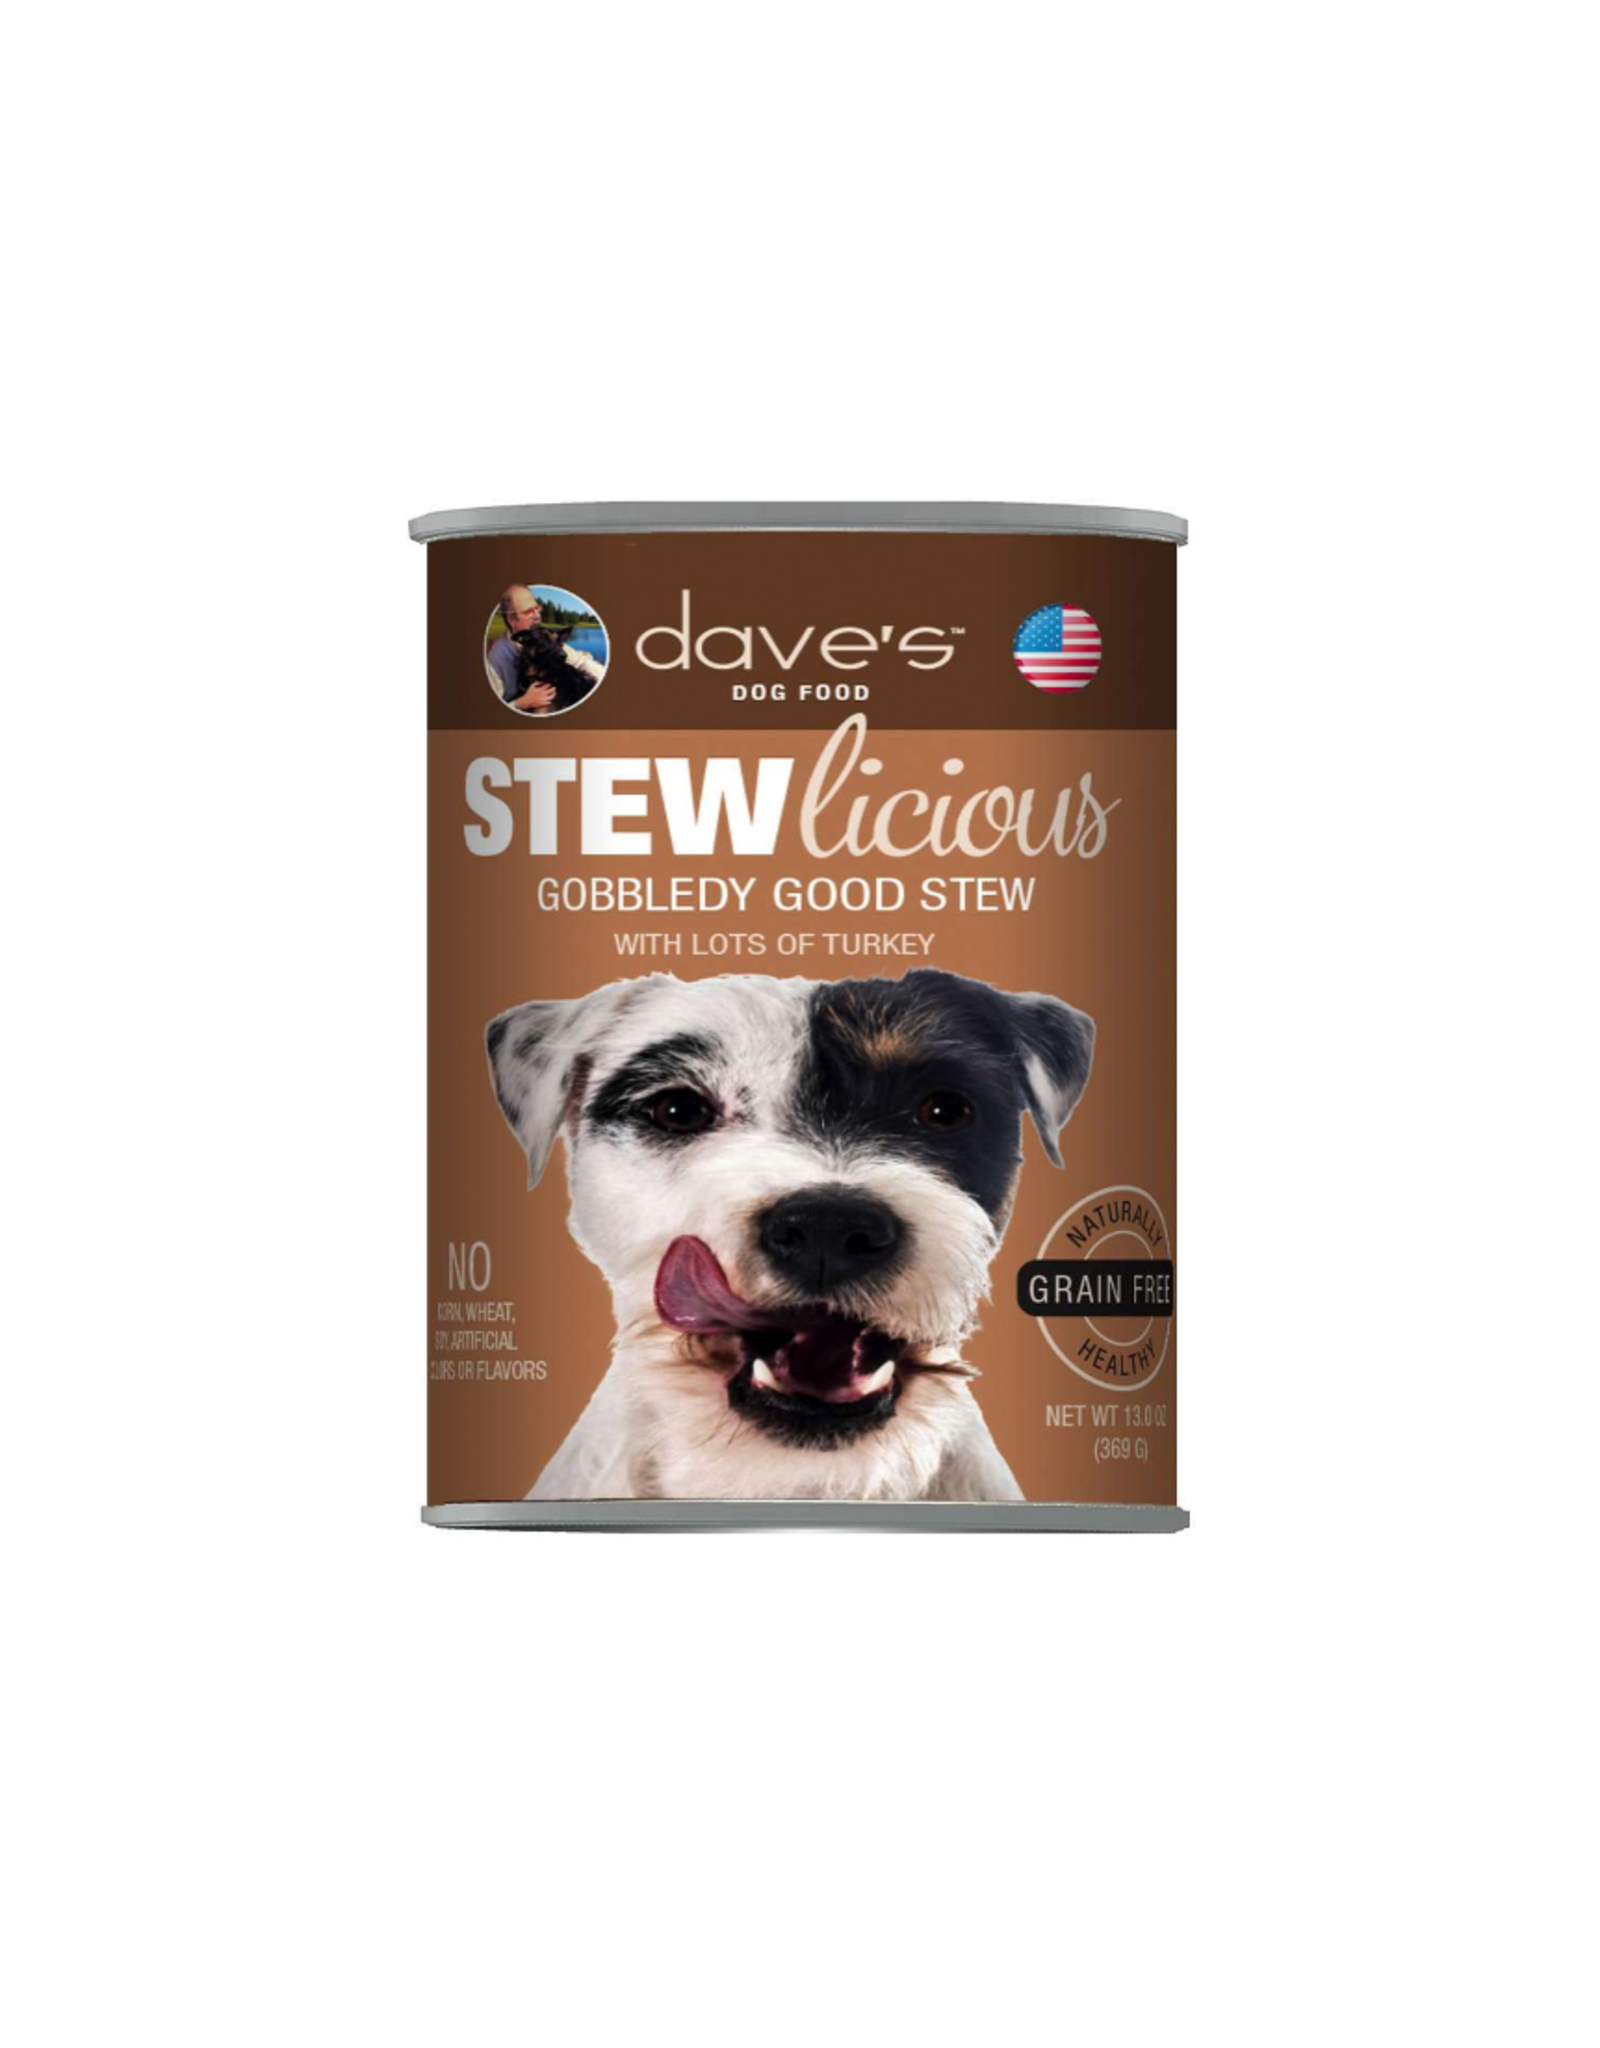 Dave's Pet Food Dave's Dog Stewlicious Gobbledy Good Stew 13oz